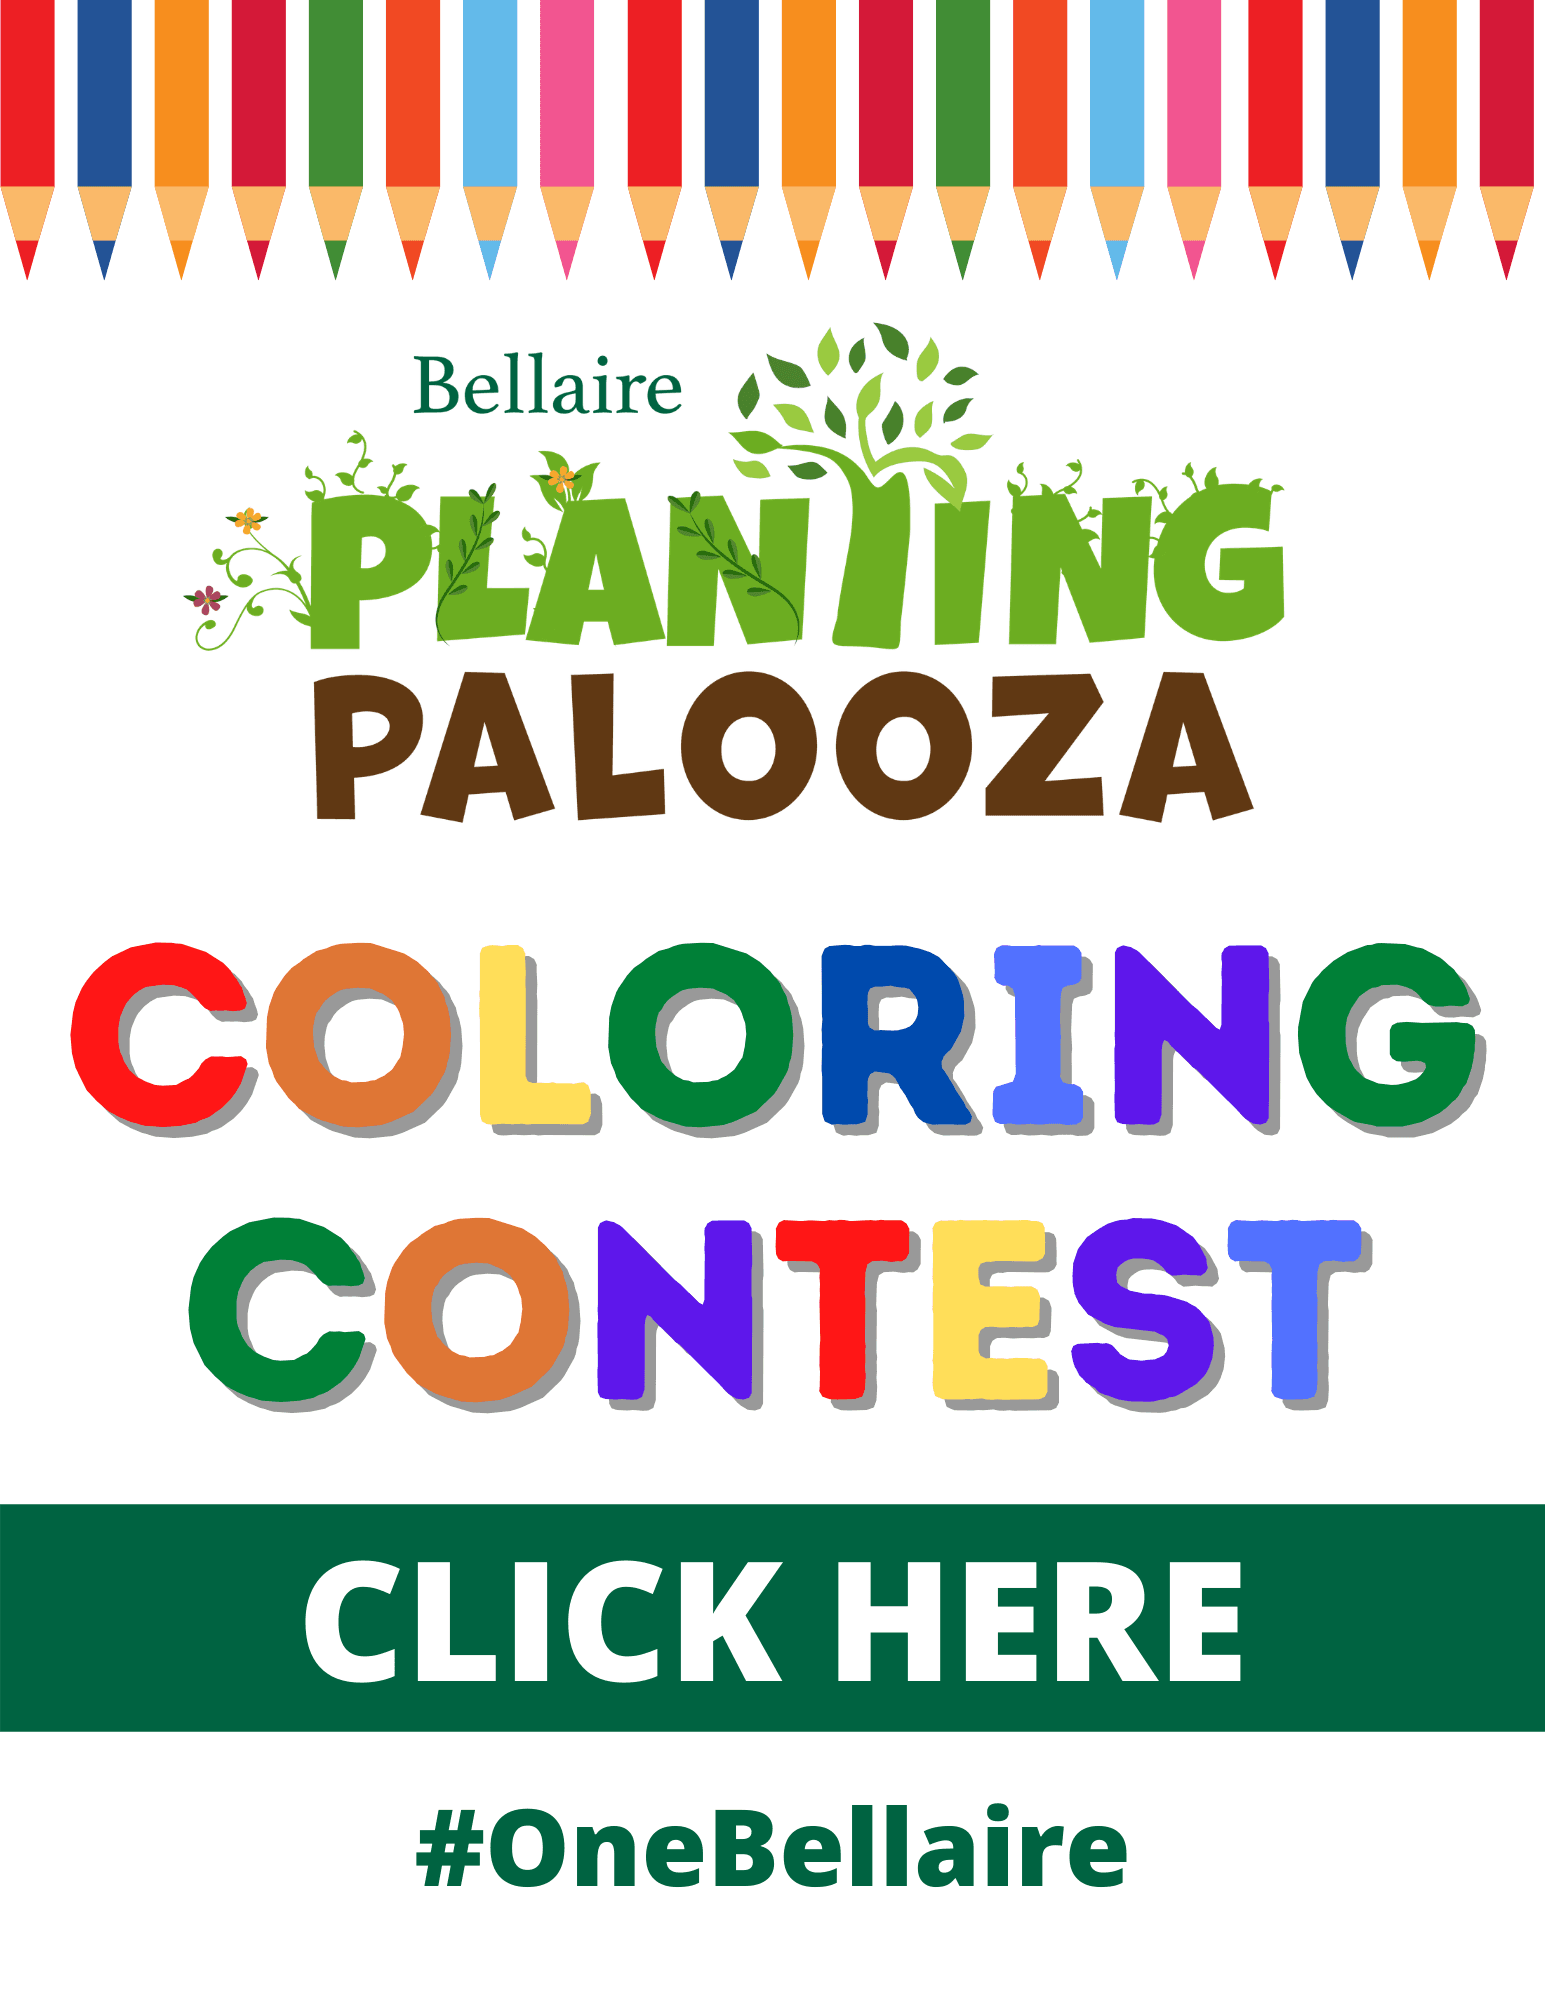 Coloring Contest Opens in new window